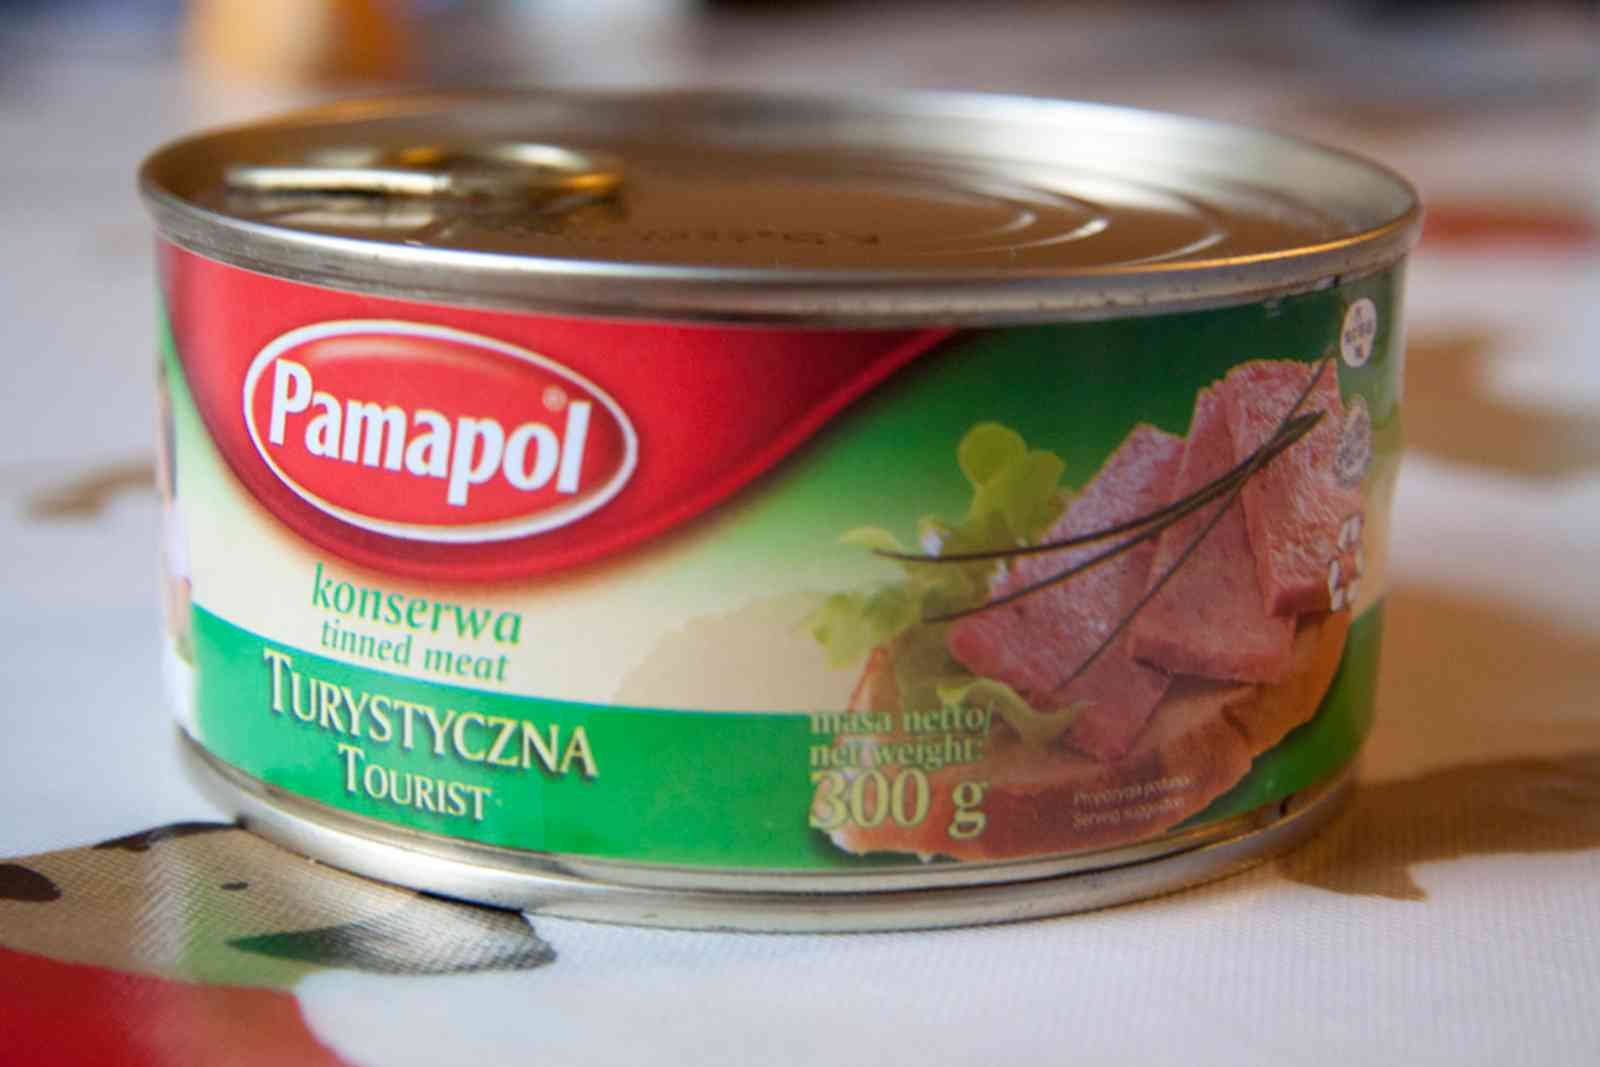 Canned Tourist, Poland